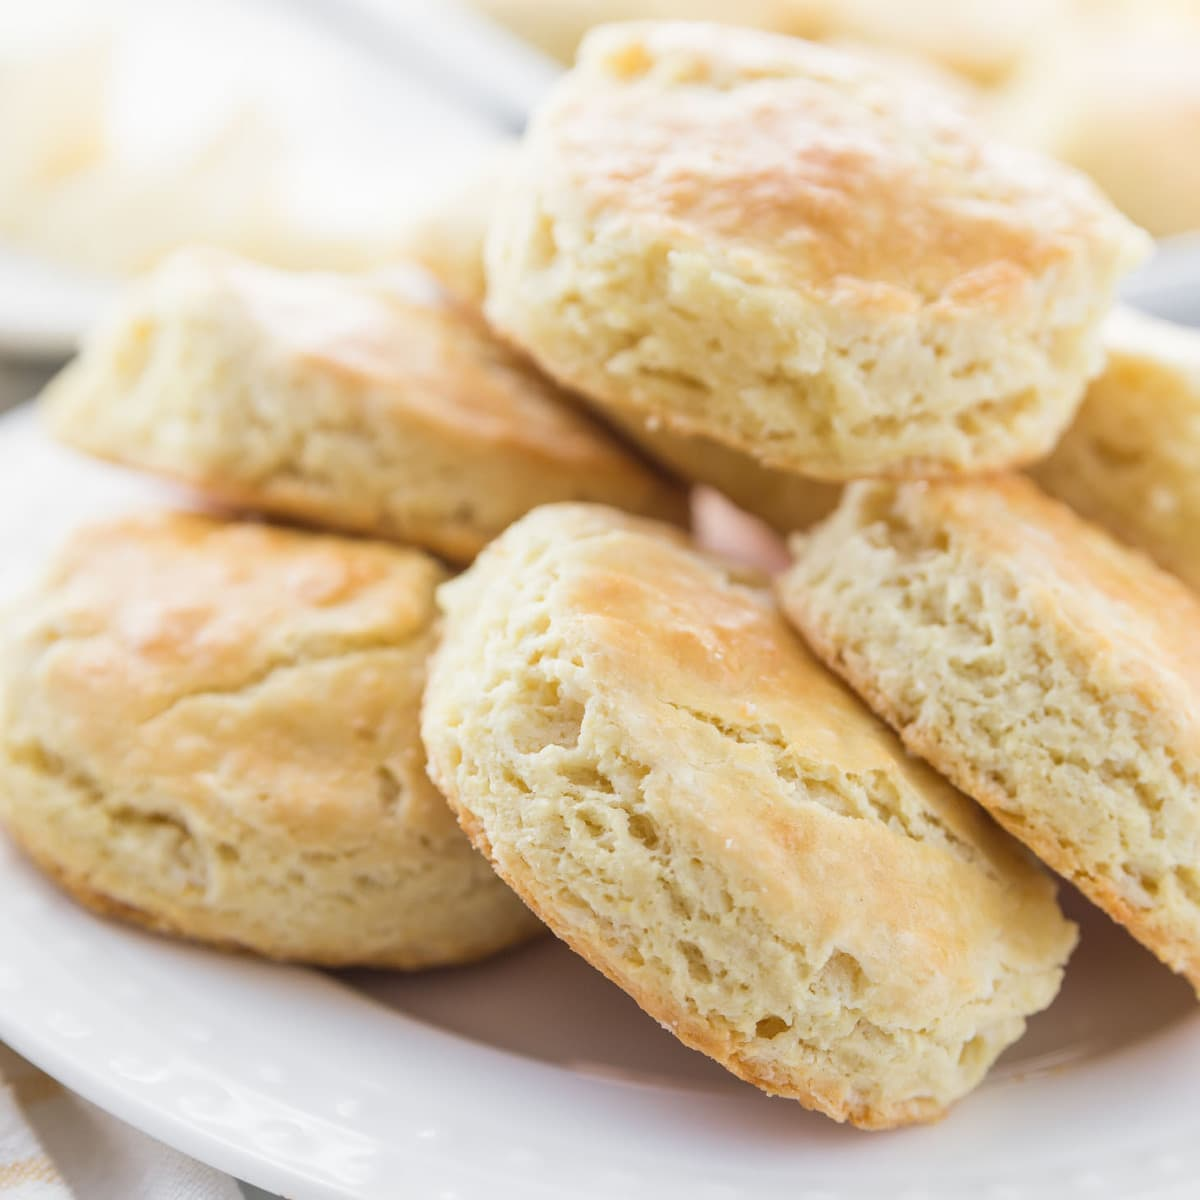 Homemade Biscuits on white plate